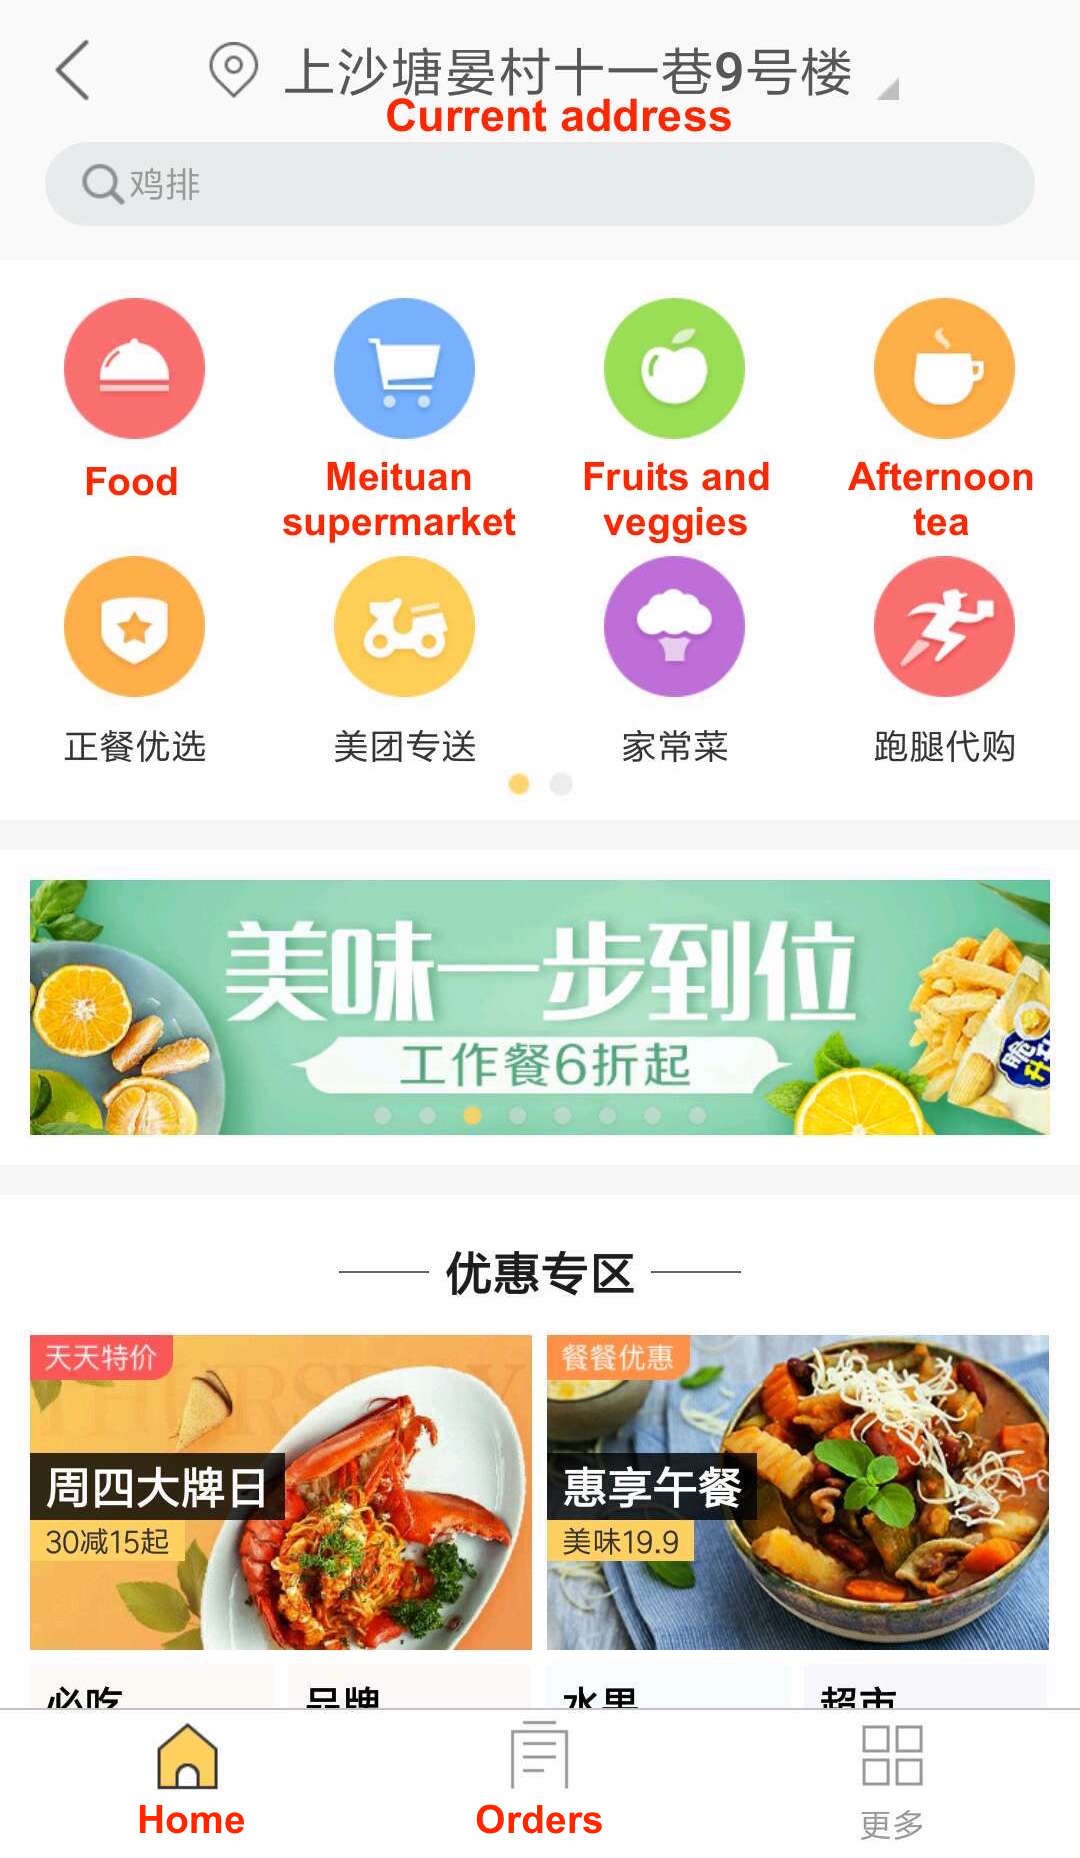 how-to-order-delivery-china-app-7.jpg